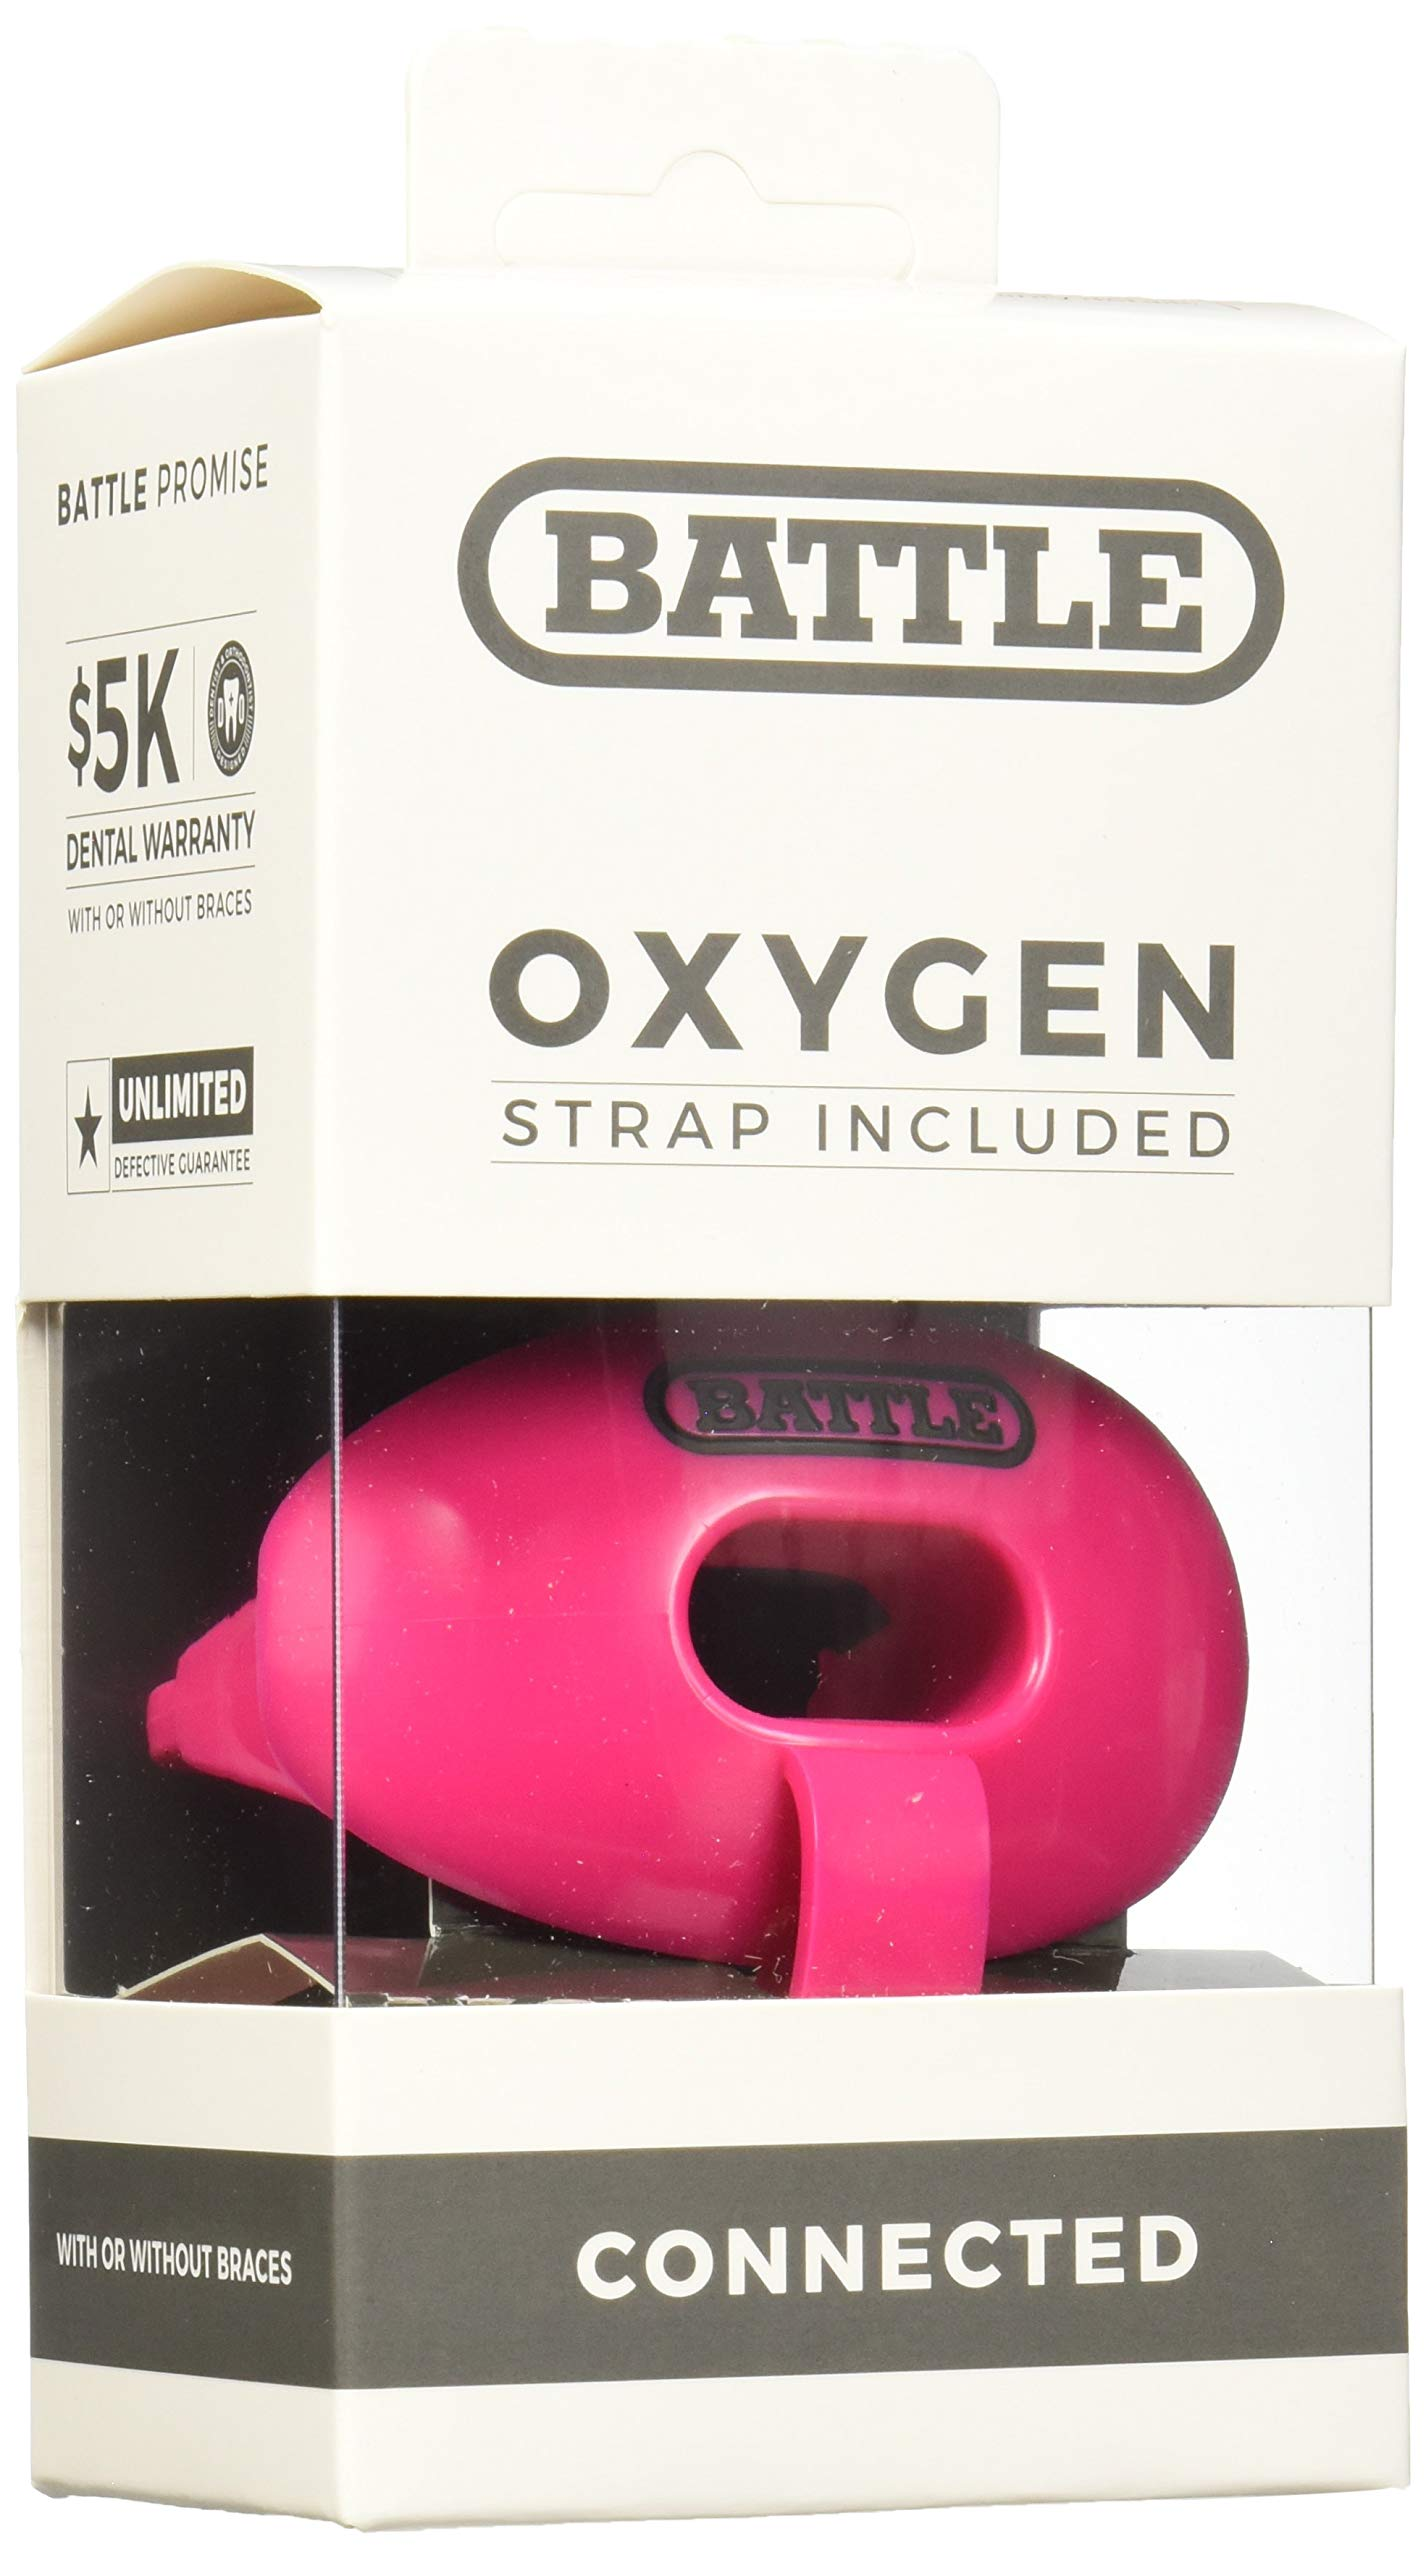 Battle Oxygen Lip Protector Mouthguard with Connected Strap - Football and Sports Mouth Guard - Maximum Oxygen Supply - Mouthpiece Fits With or Without Braces - Impact Shield Covers Lips and Teeth by Battle